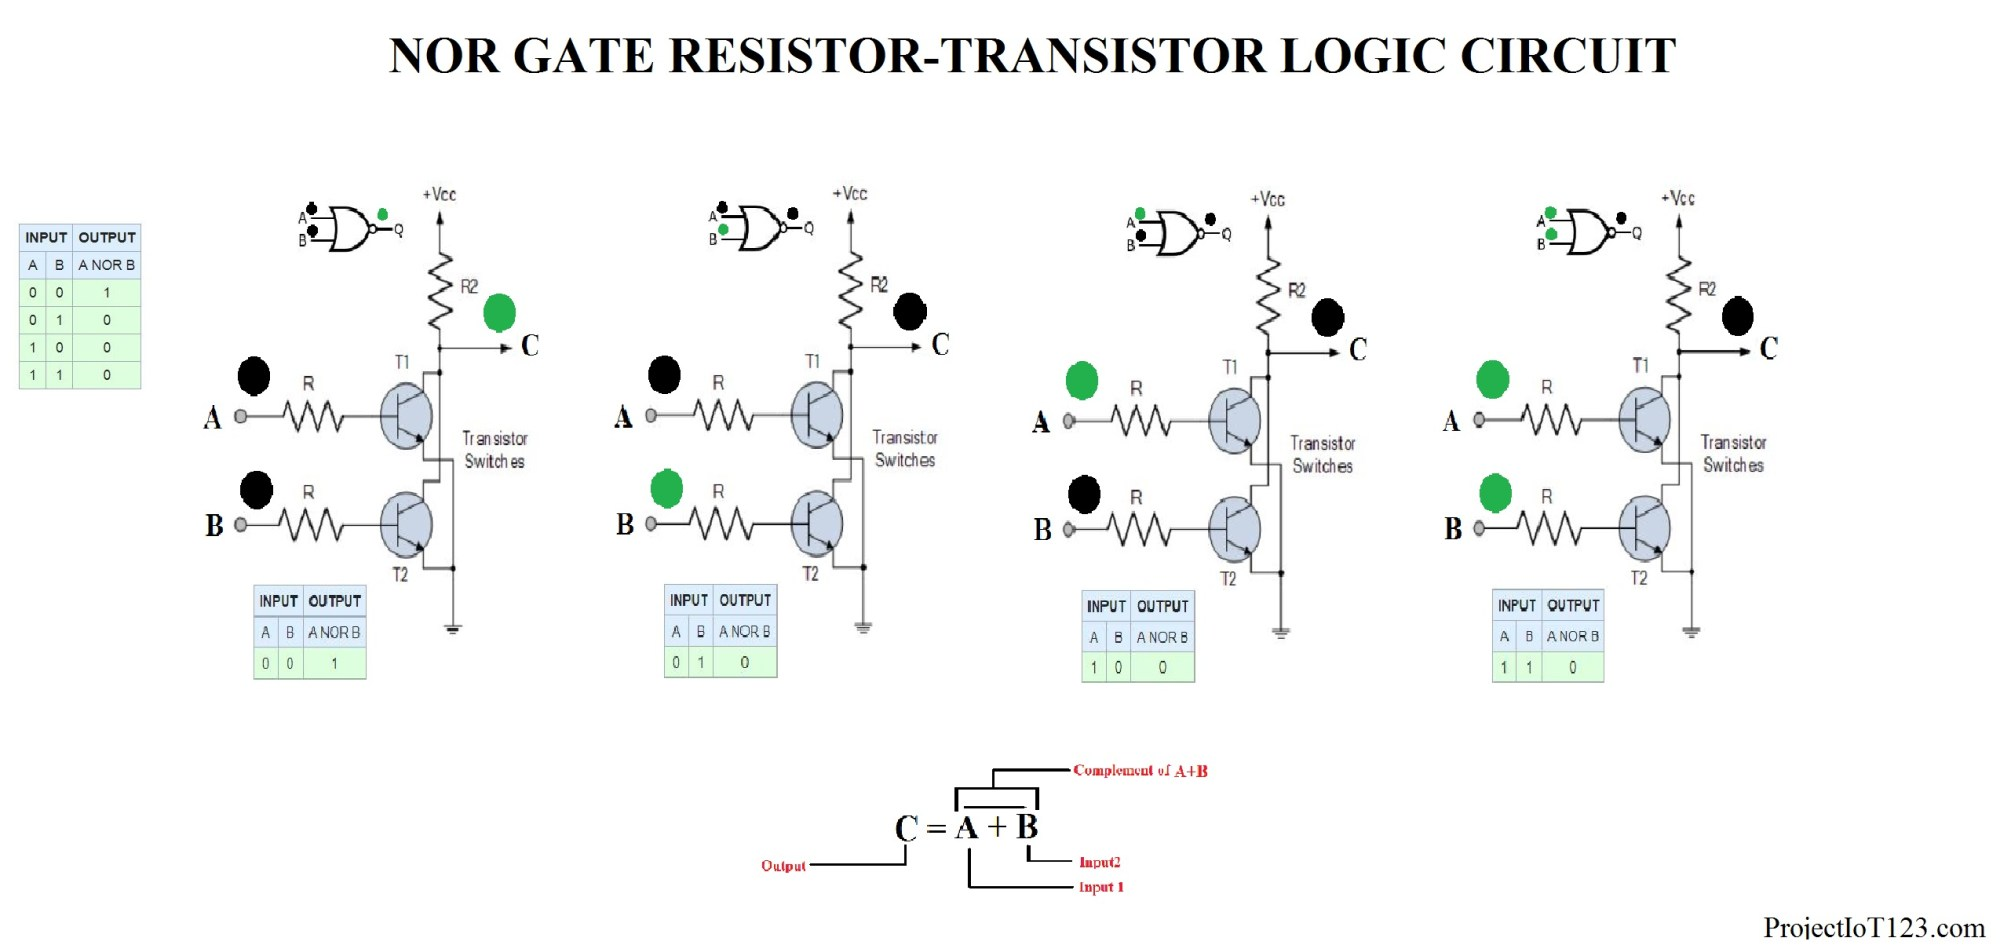 hight resolution of the inputs a and b of the nor gate are connected at the base of the transistors t1 and t2 respectively and the output is taken from the collector